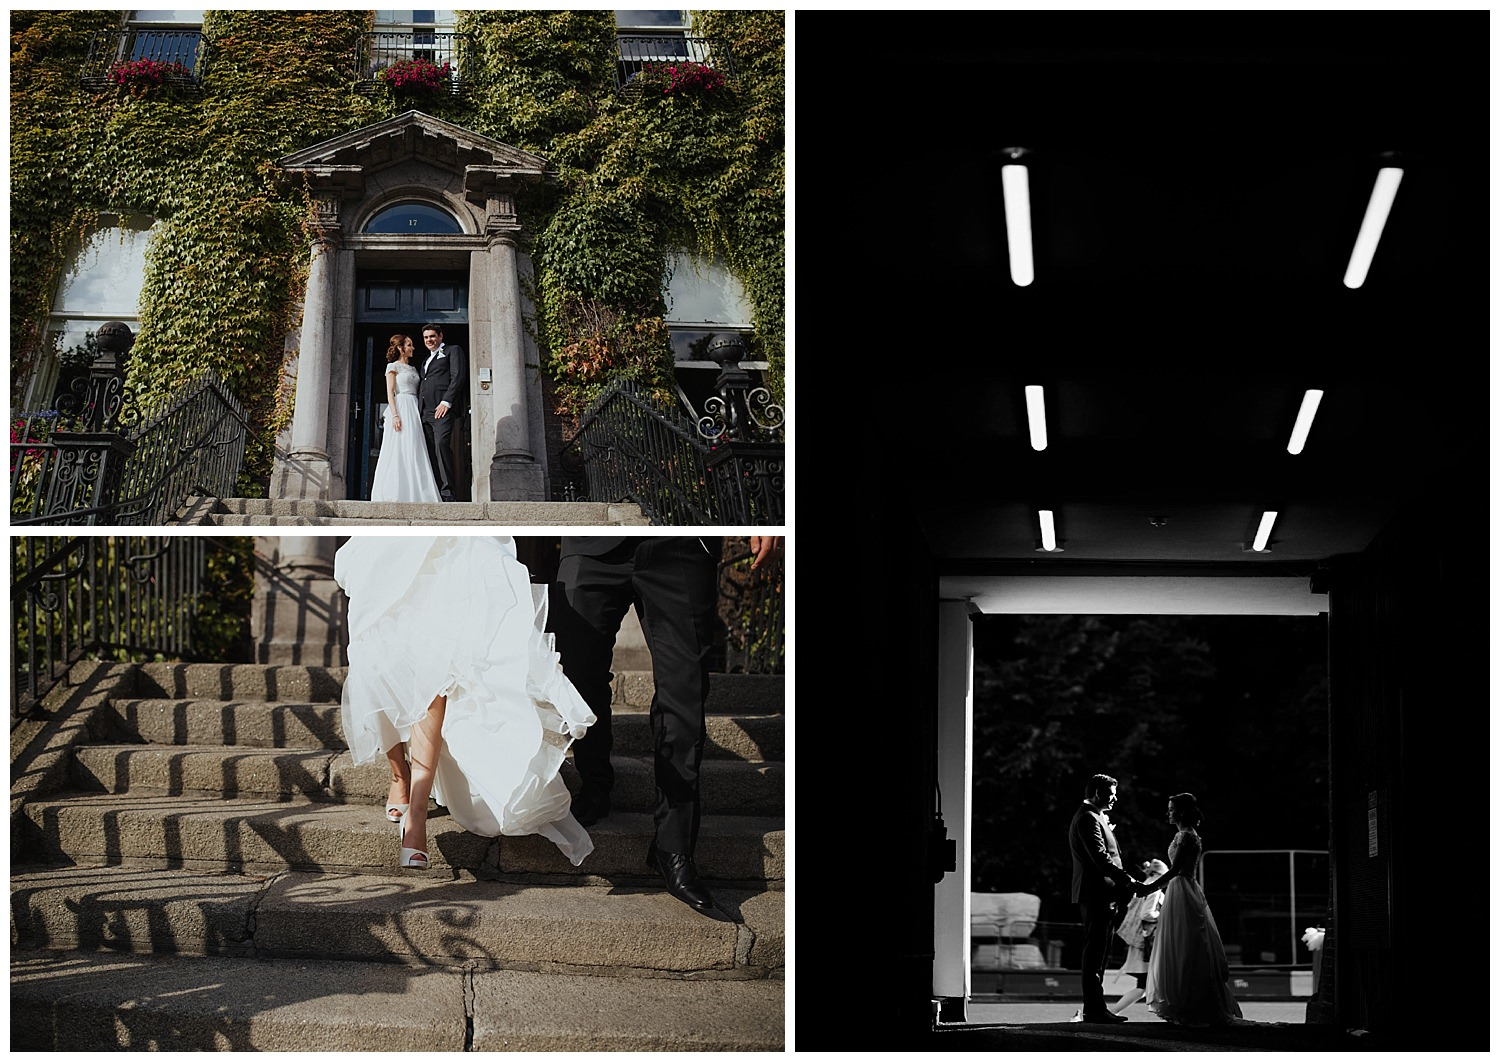 g+j_westbury_documentary_dublin_city_wedding_photographer44.jpg